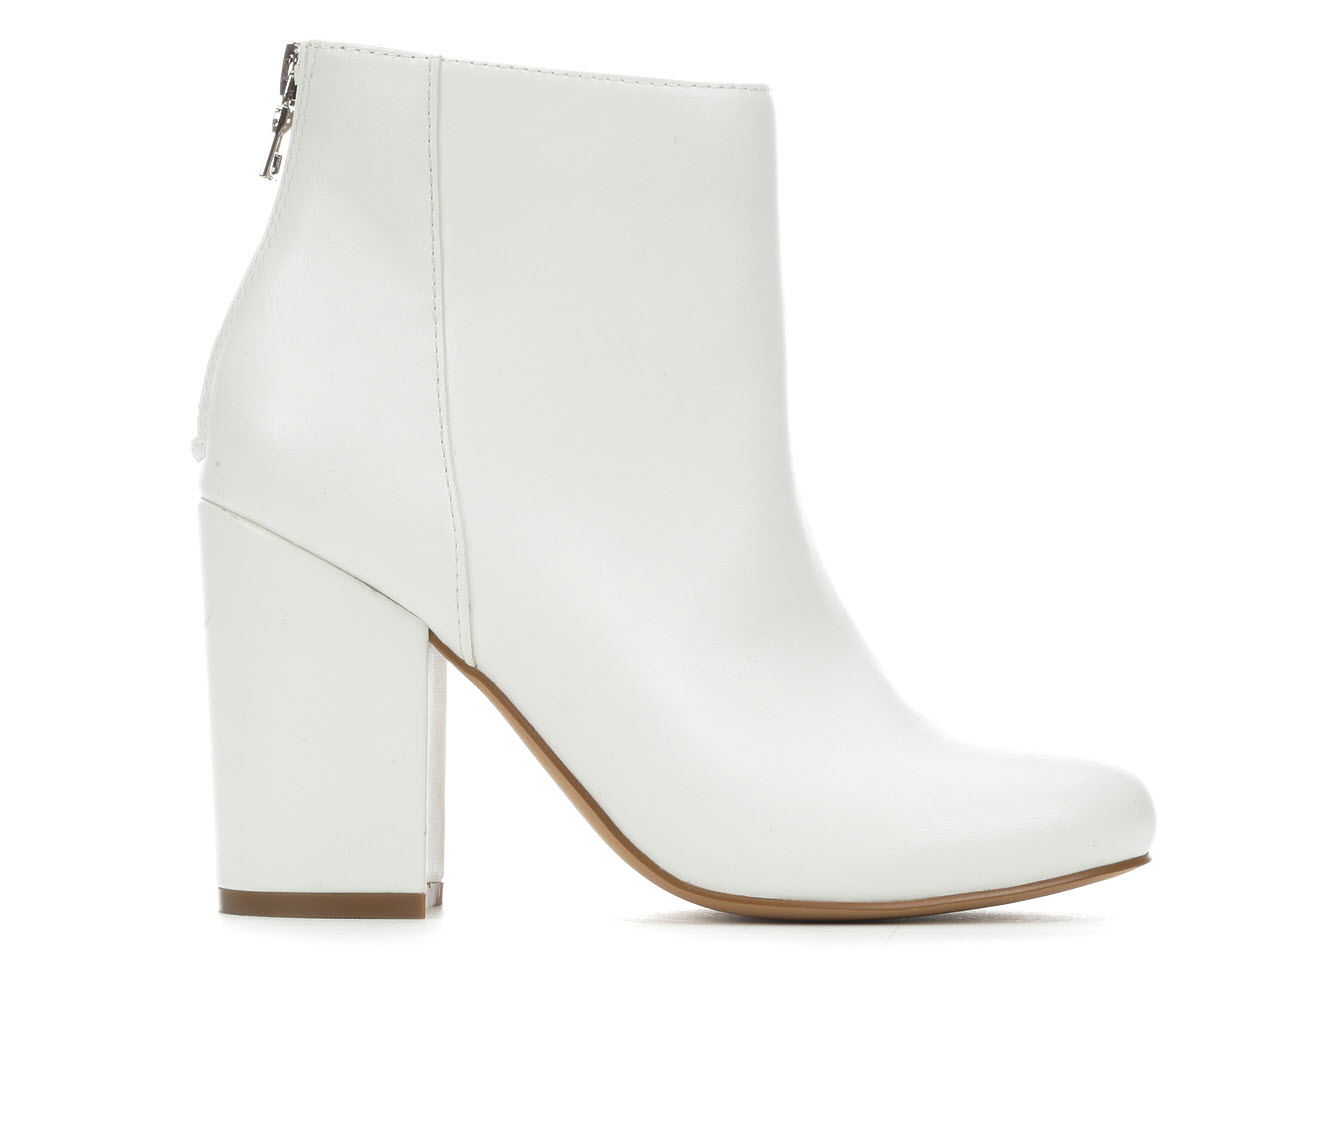 Madden Girl Shadey Women's Boot (White Faux Leather)